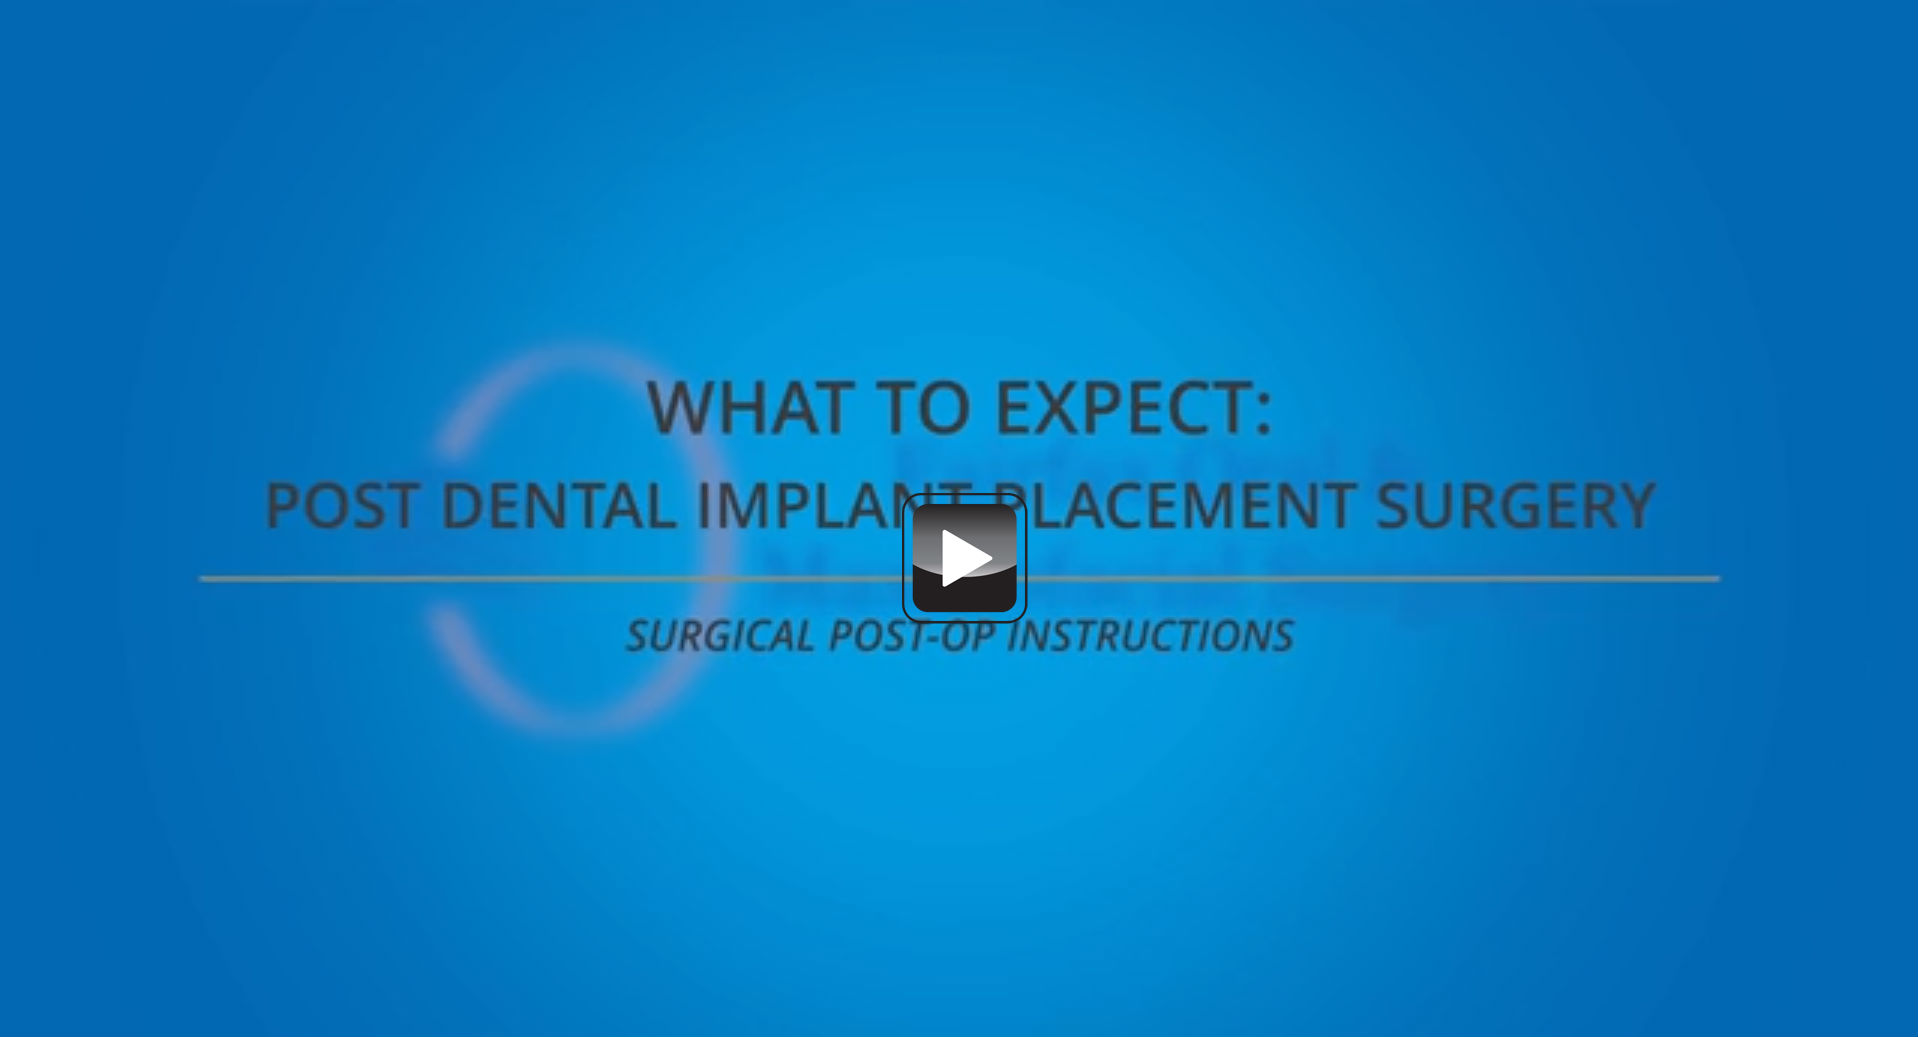 Post Dental Implant Instructions Oral Surgery » Fairfax Oral